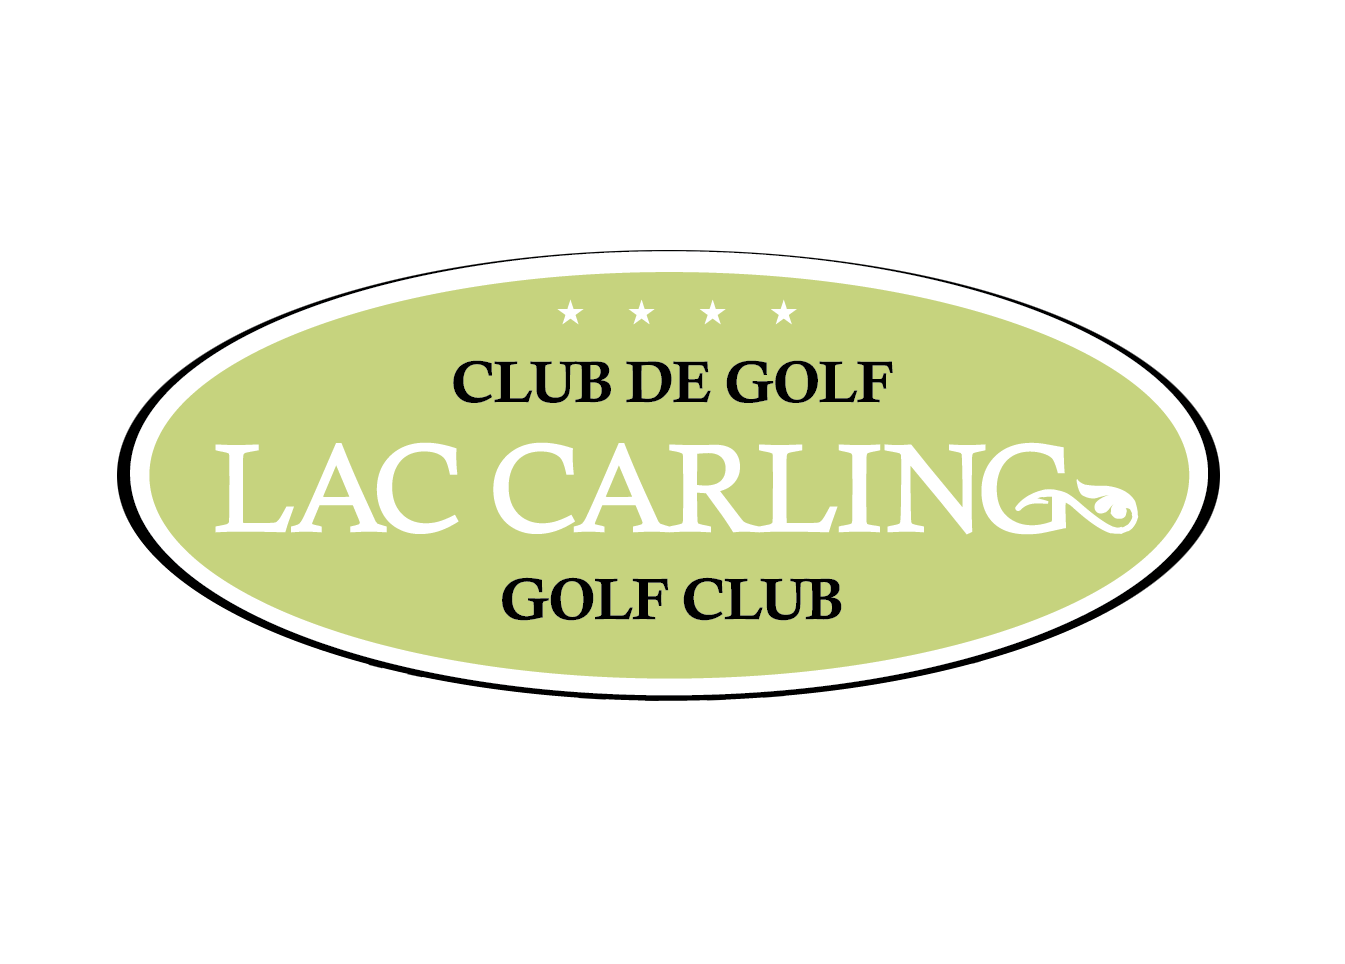 Carling Lake Golf Club